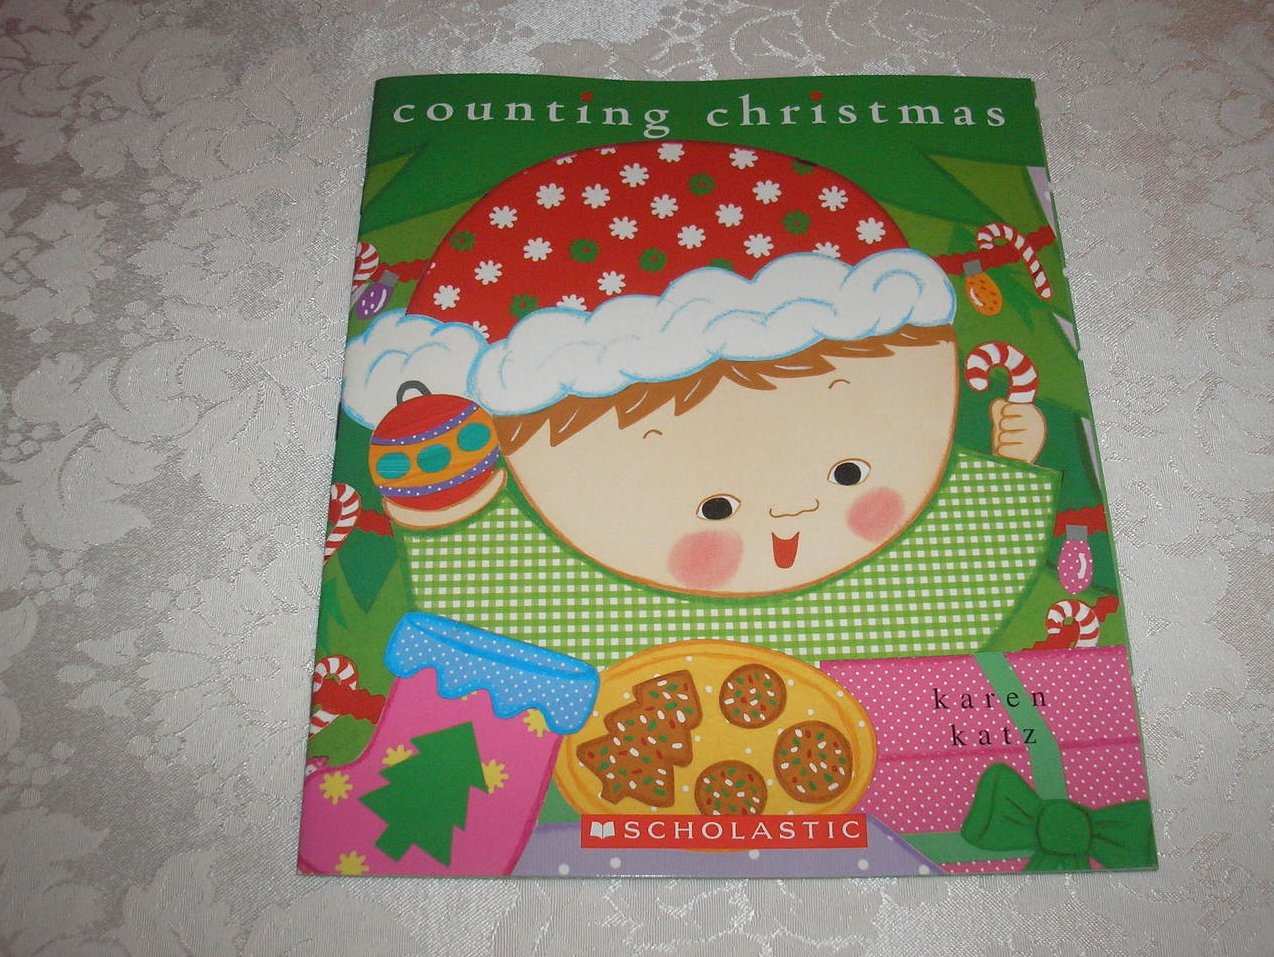 Counting Christmas Karen Katz brand new sc